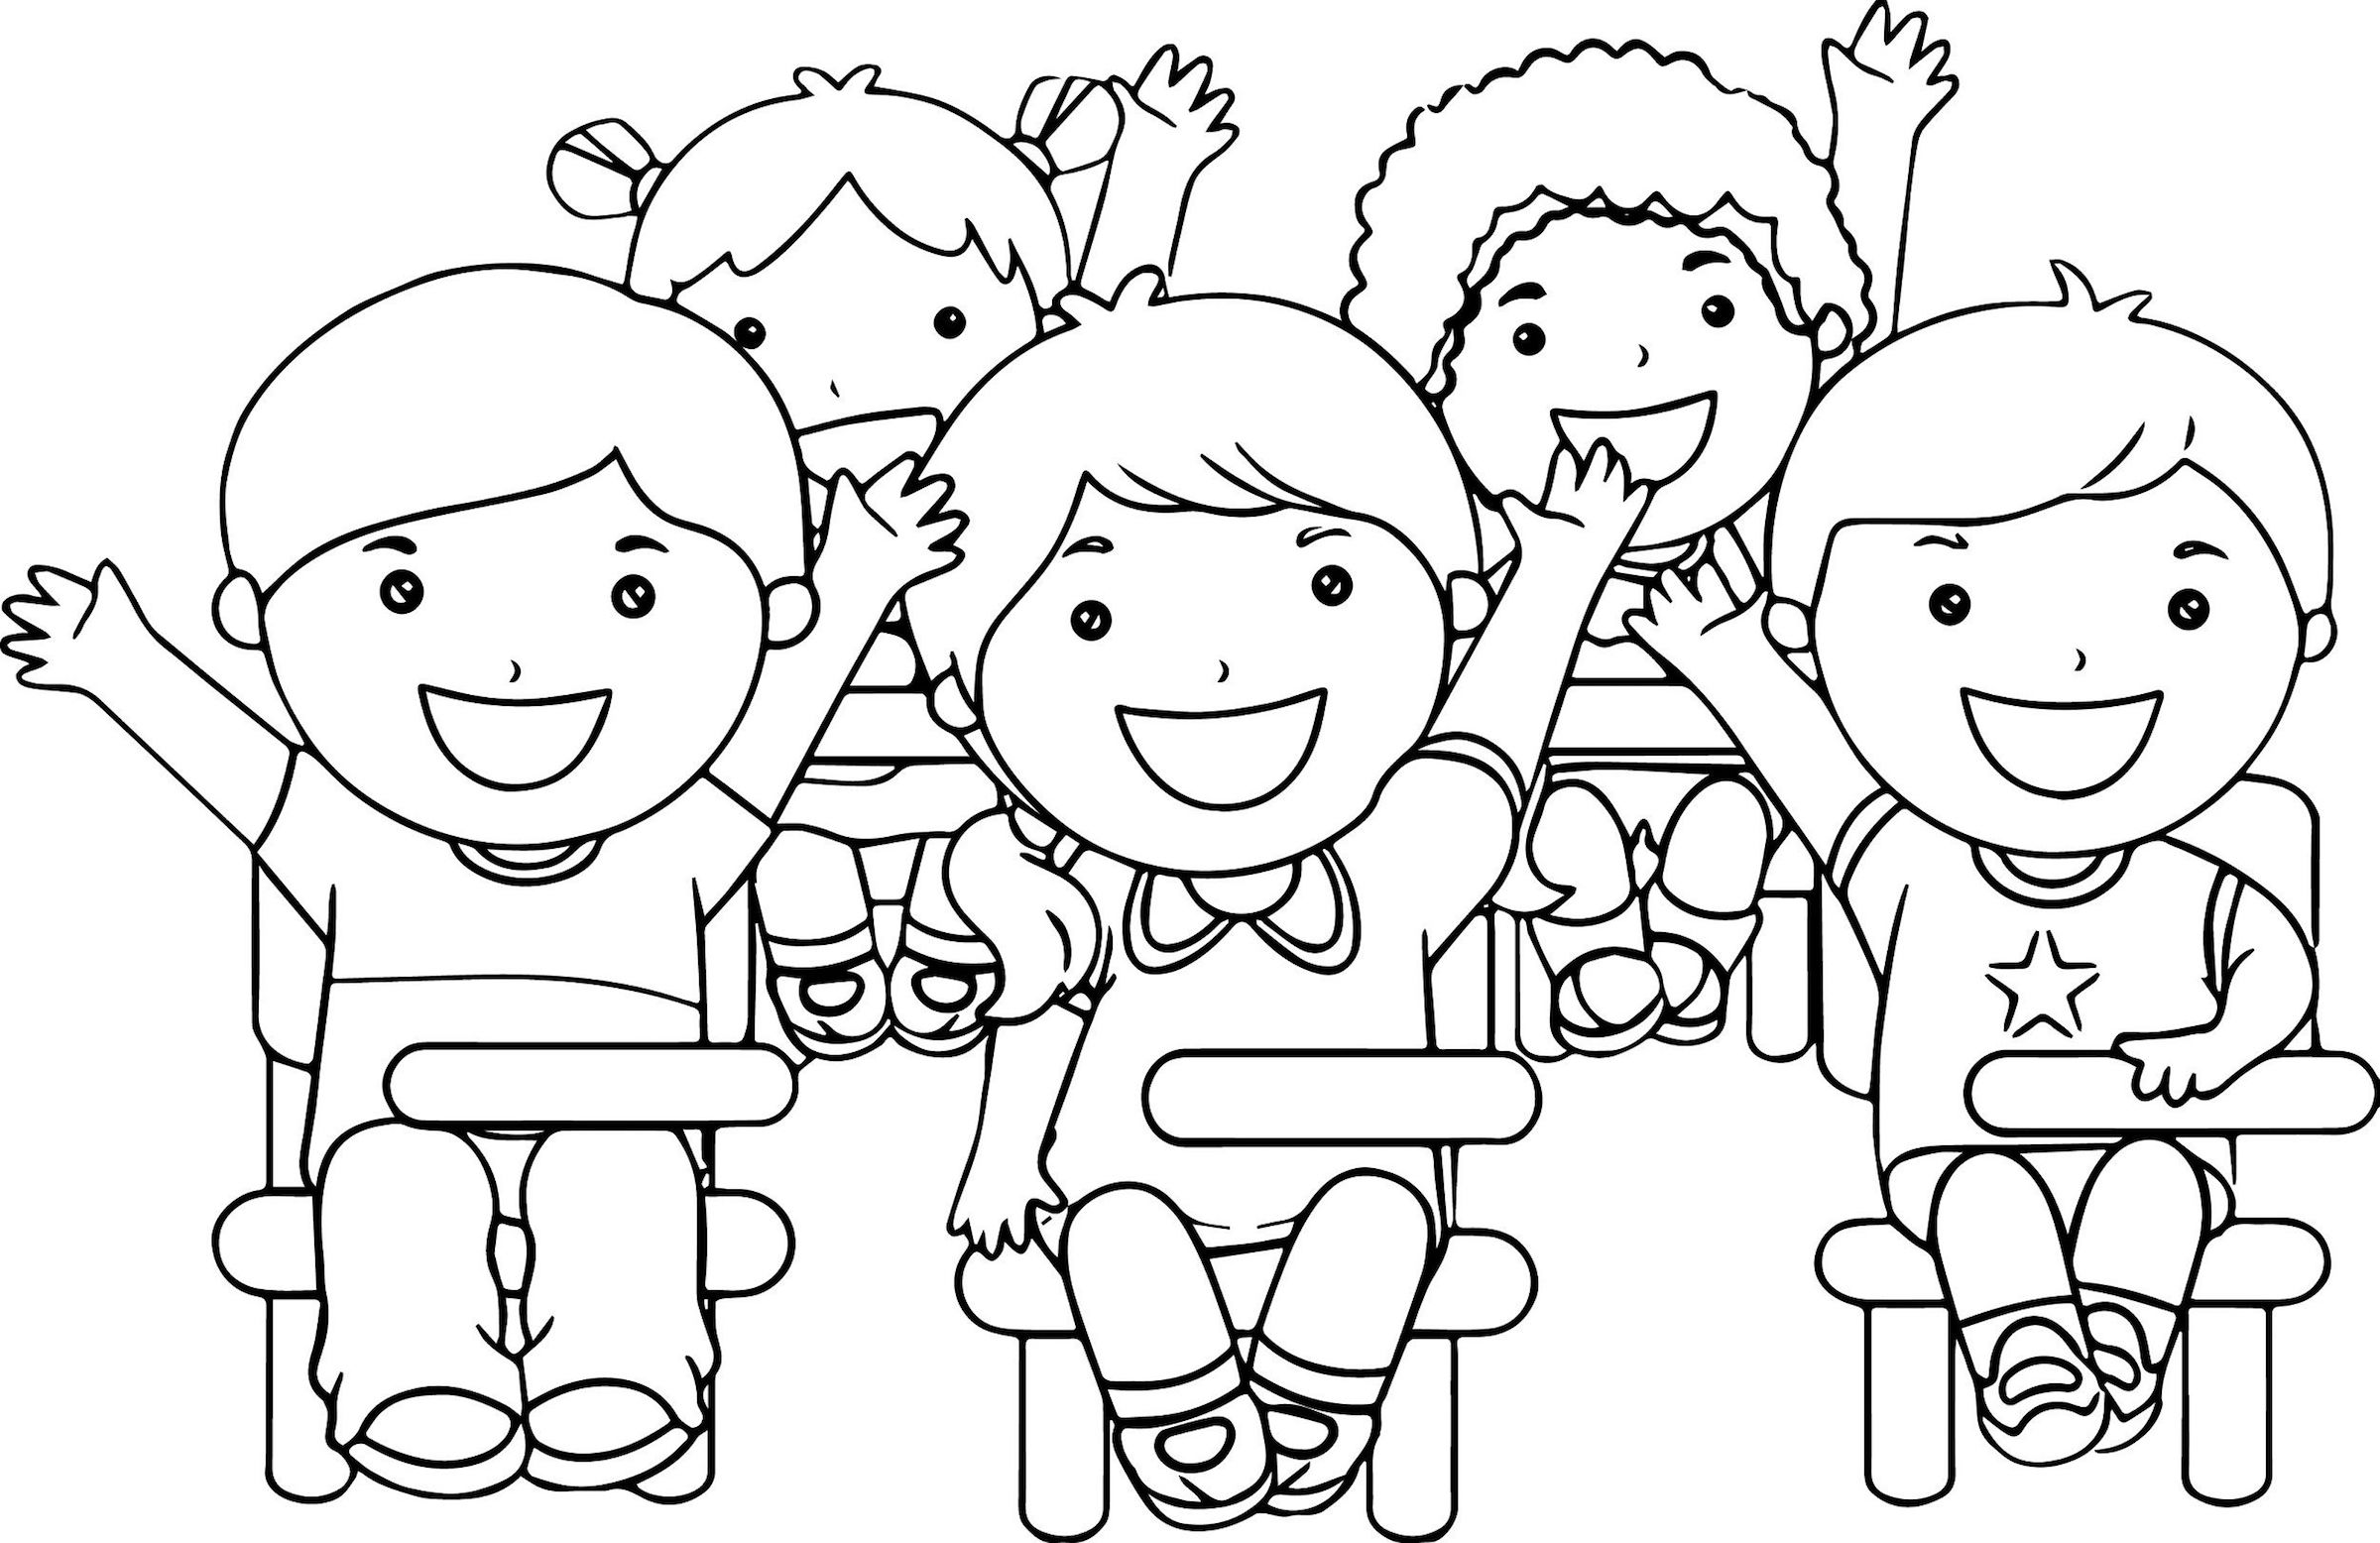 coloring clipart for kids christmas tree scenery clipart black and white clipground clipart coloring kids for